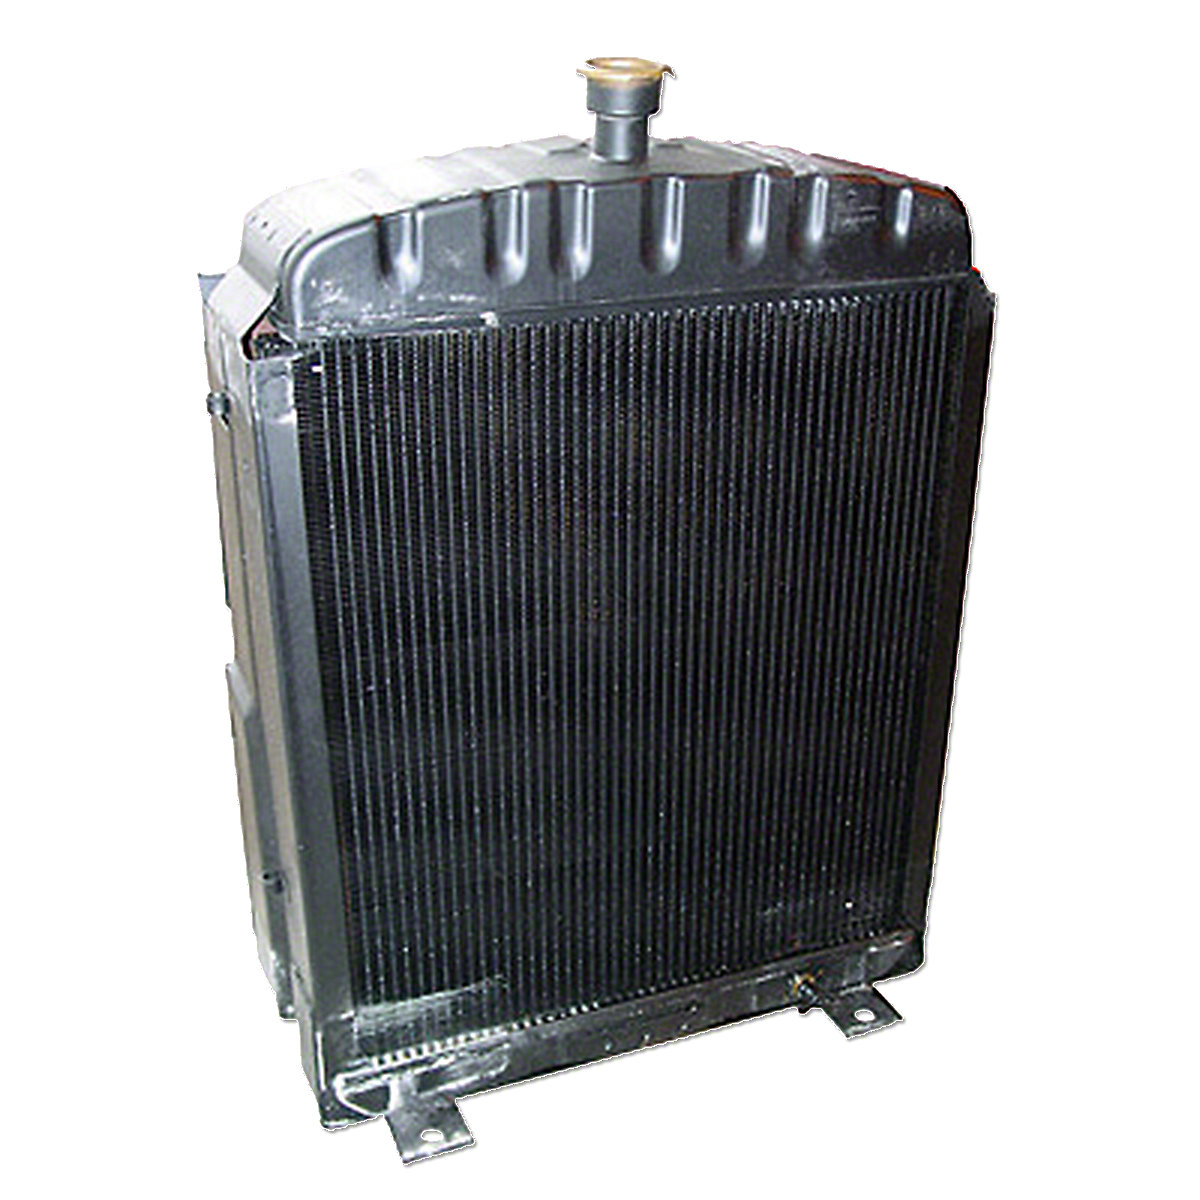 Radiator For Allis Chalmers: D17 Gas Models